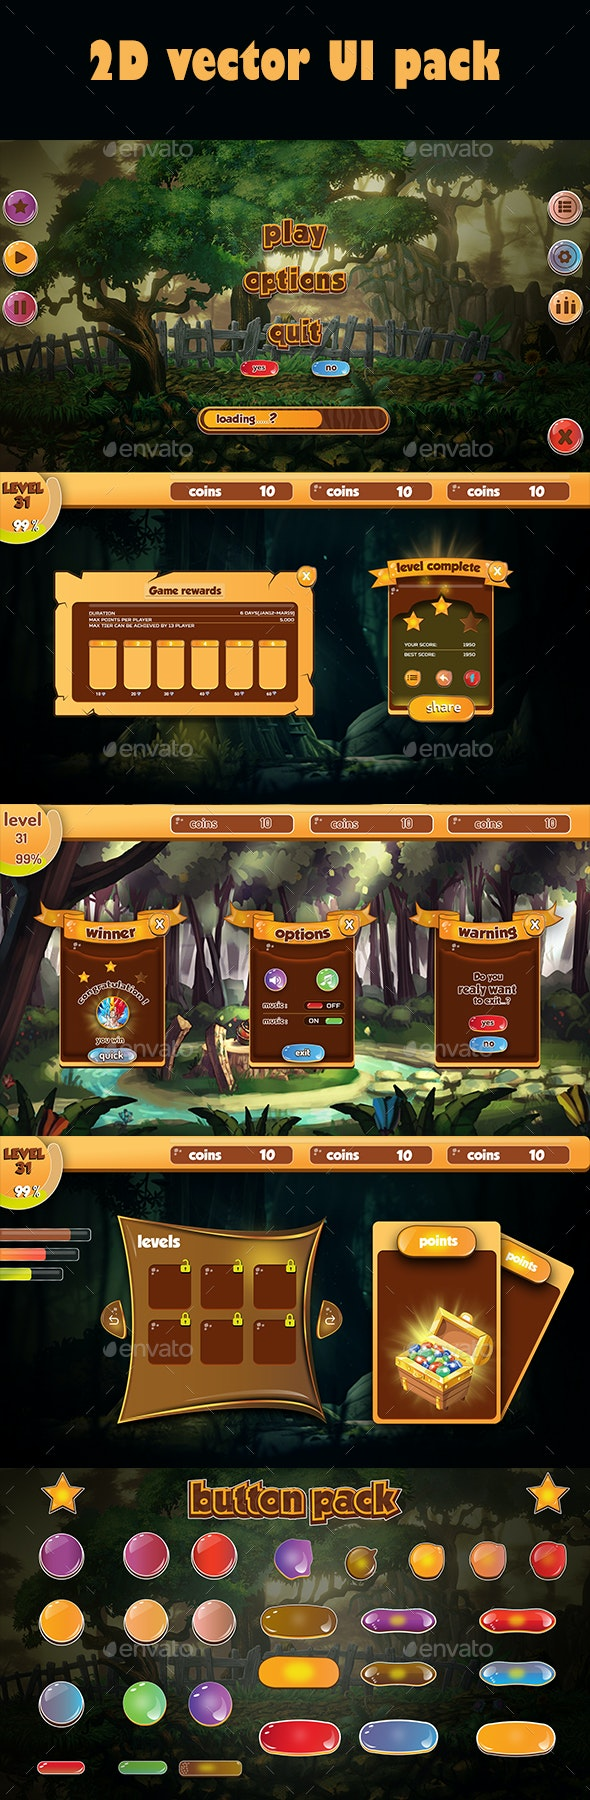 Forest Theme UI Pack - GUI Components - User Interfaces Game Assets